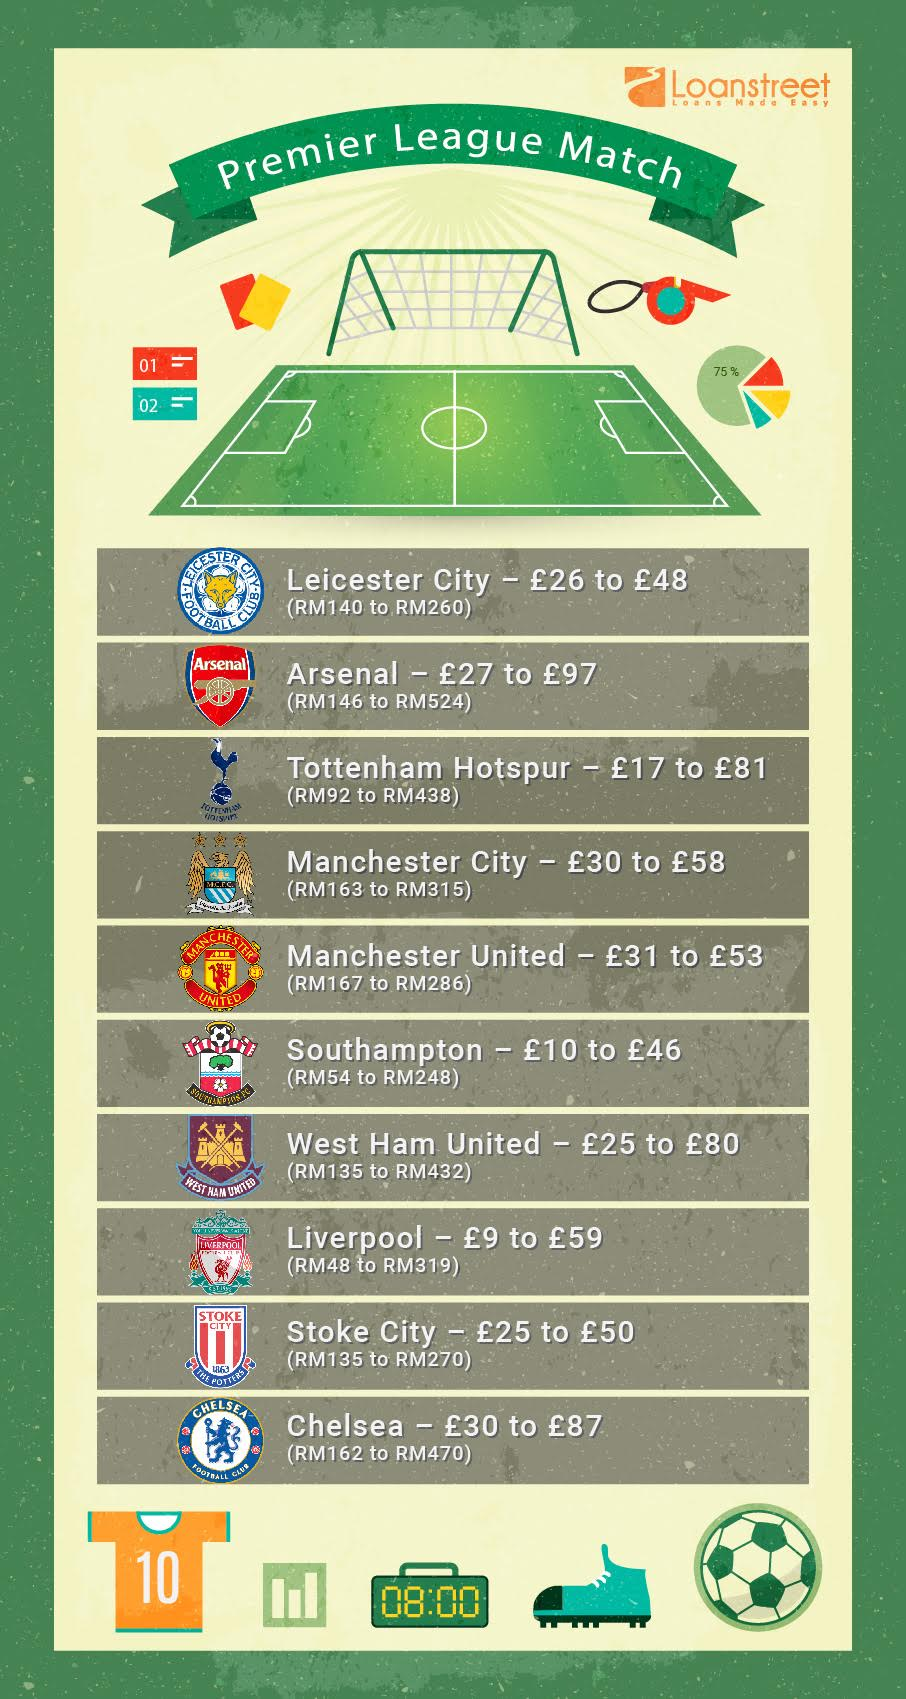 How Much Does It Cost To Watch A Premier League Match In The UK?